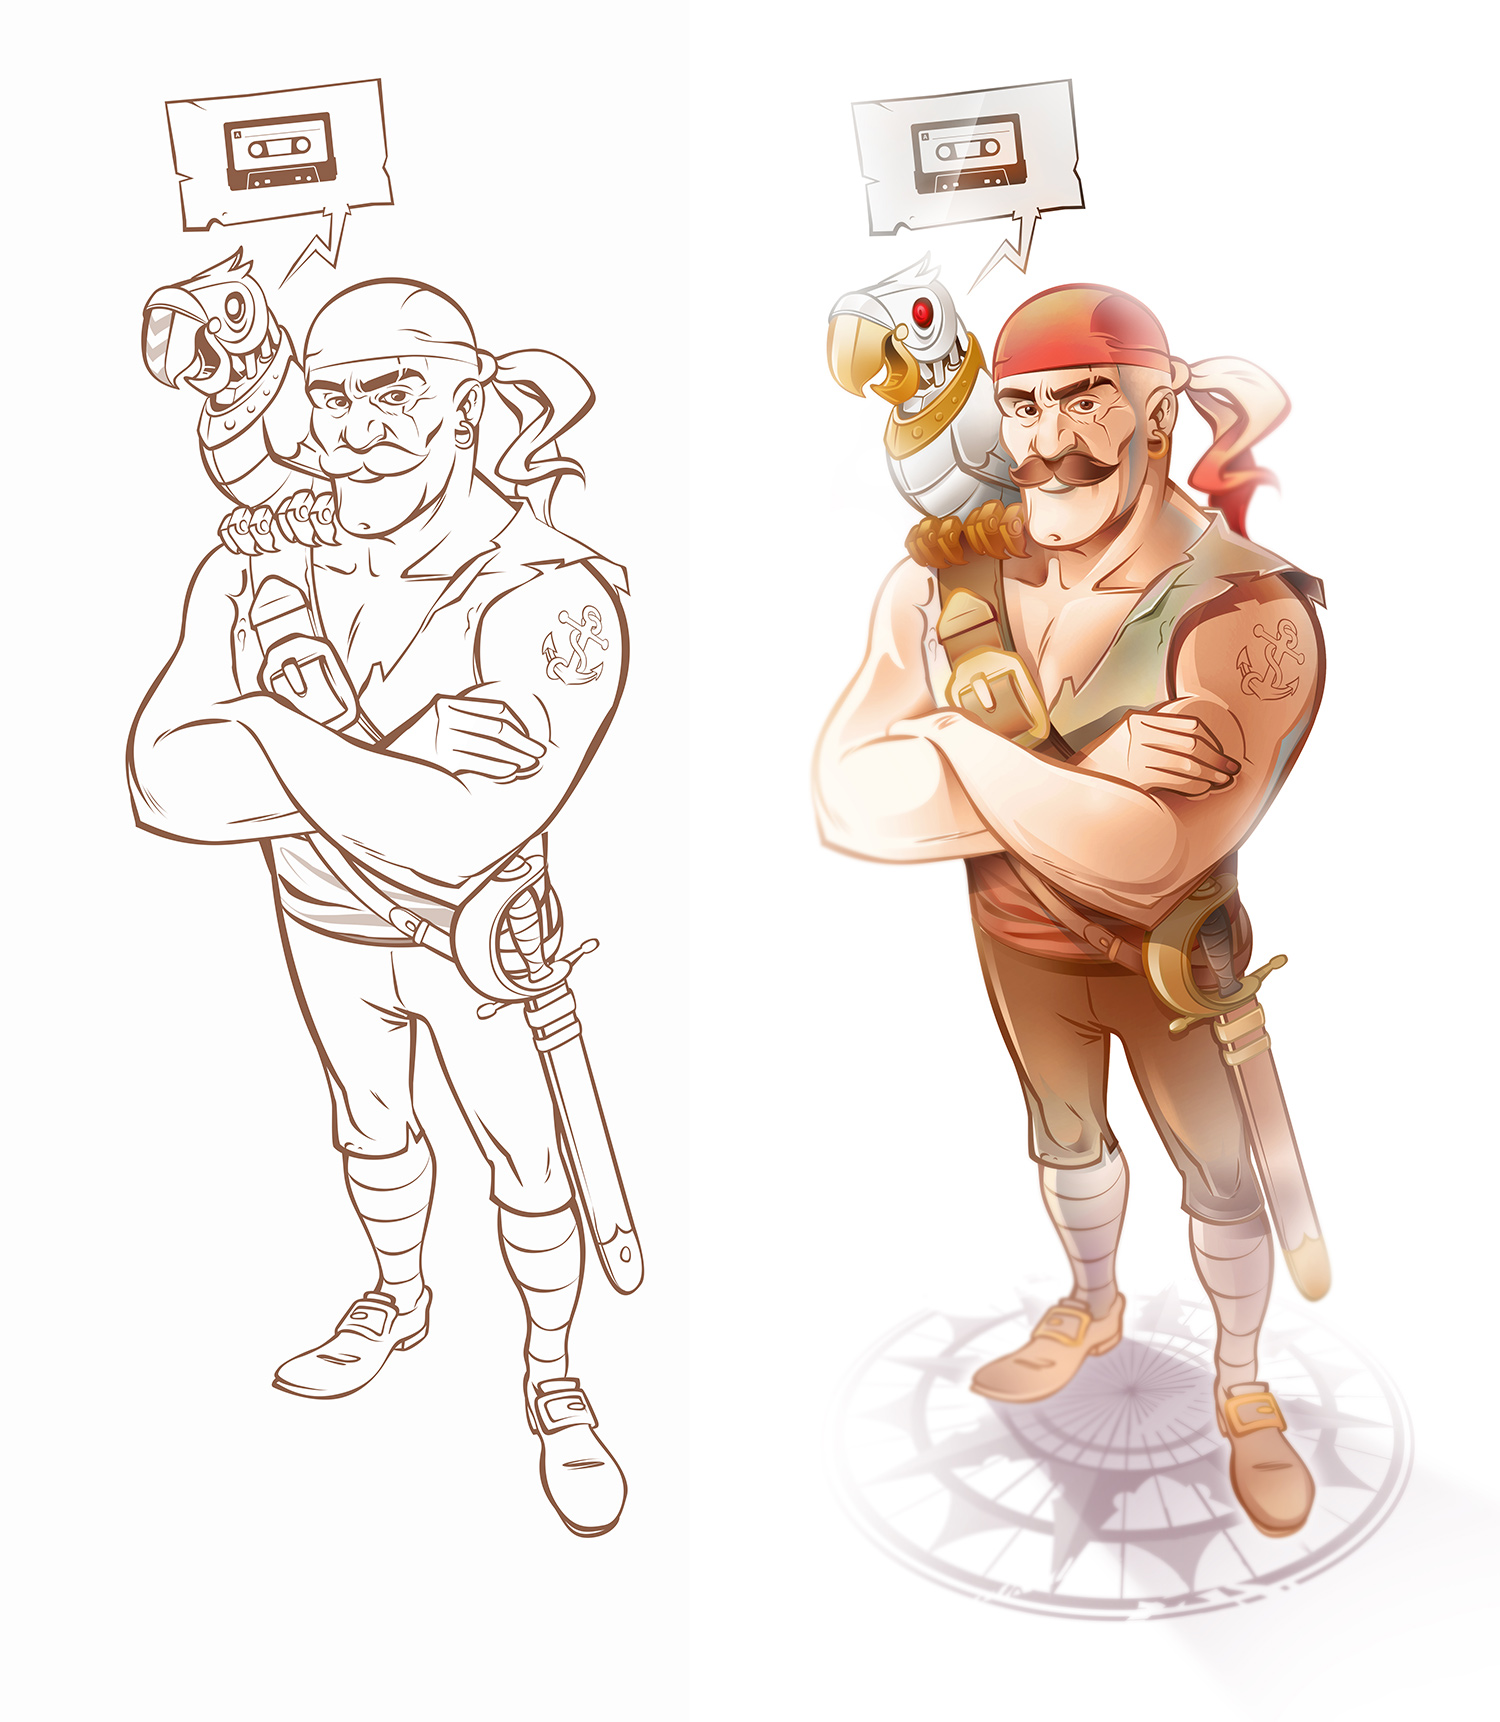 Steampunk Character Design - Pirate